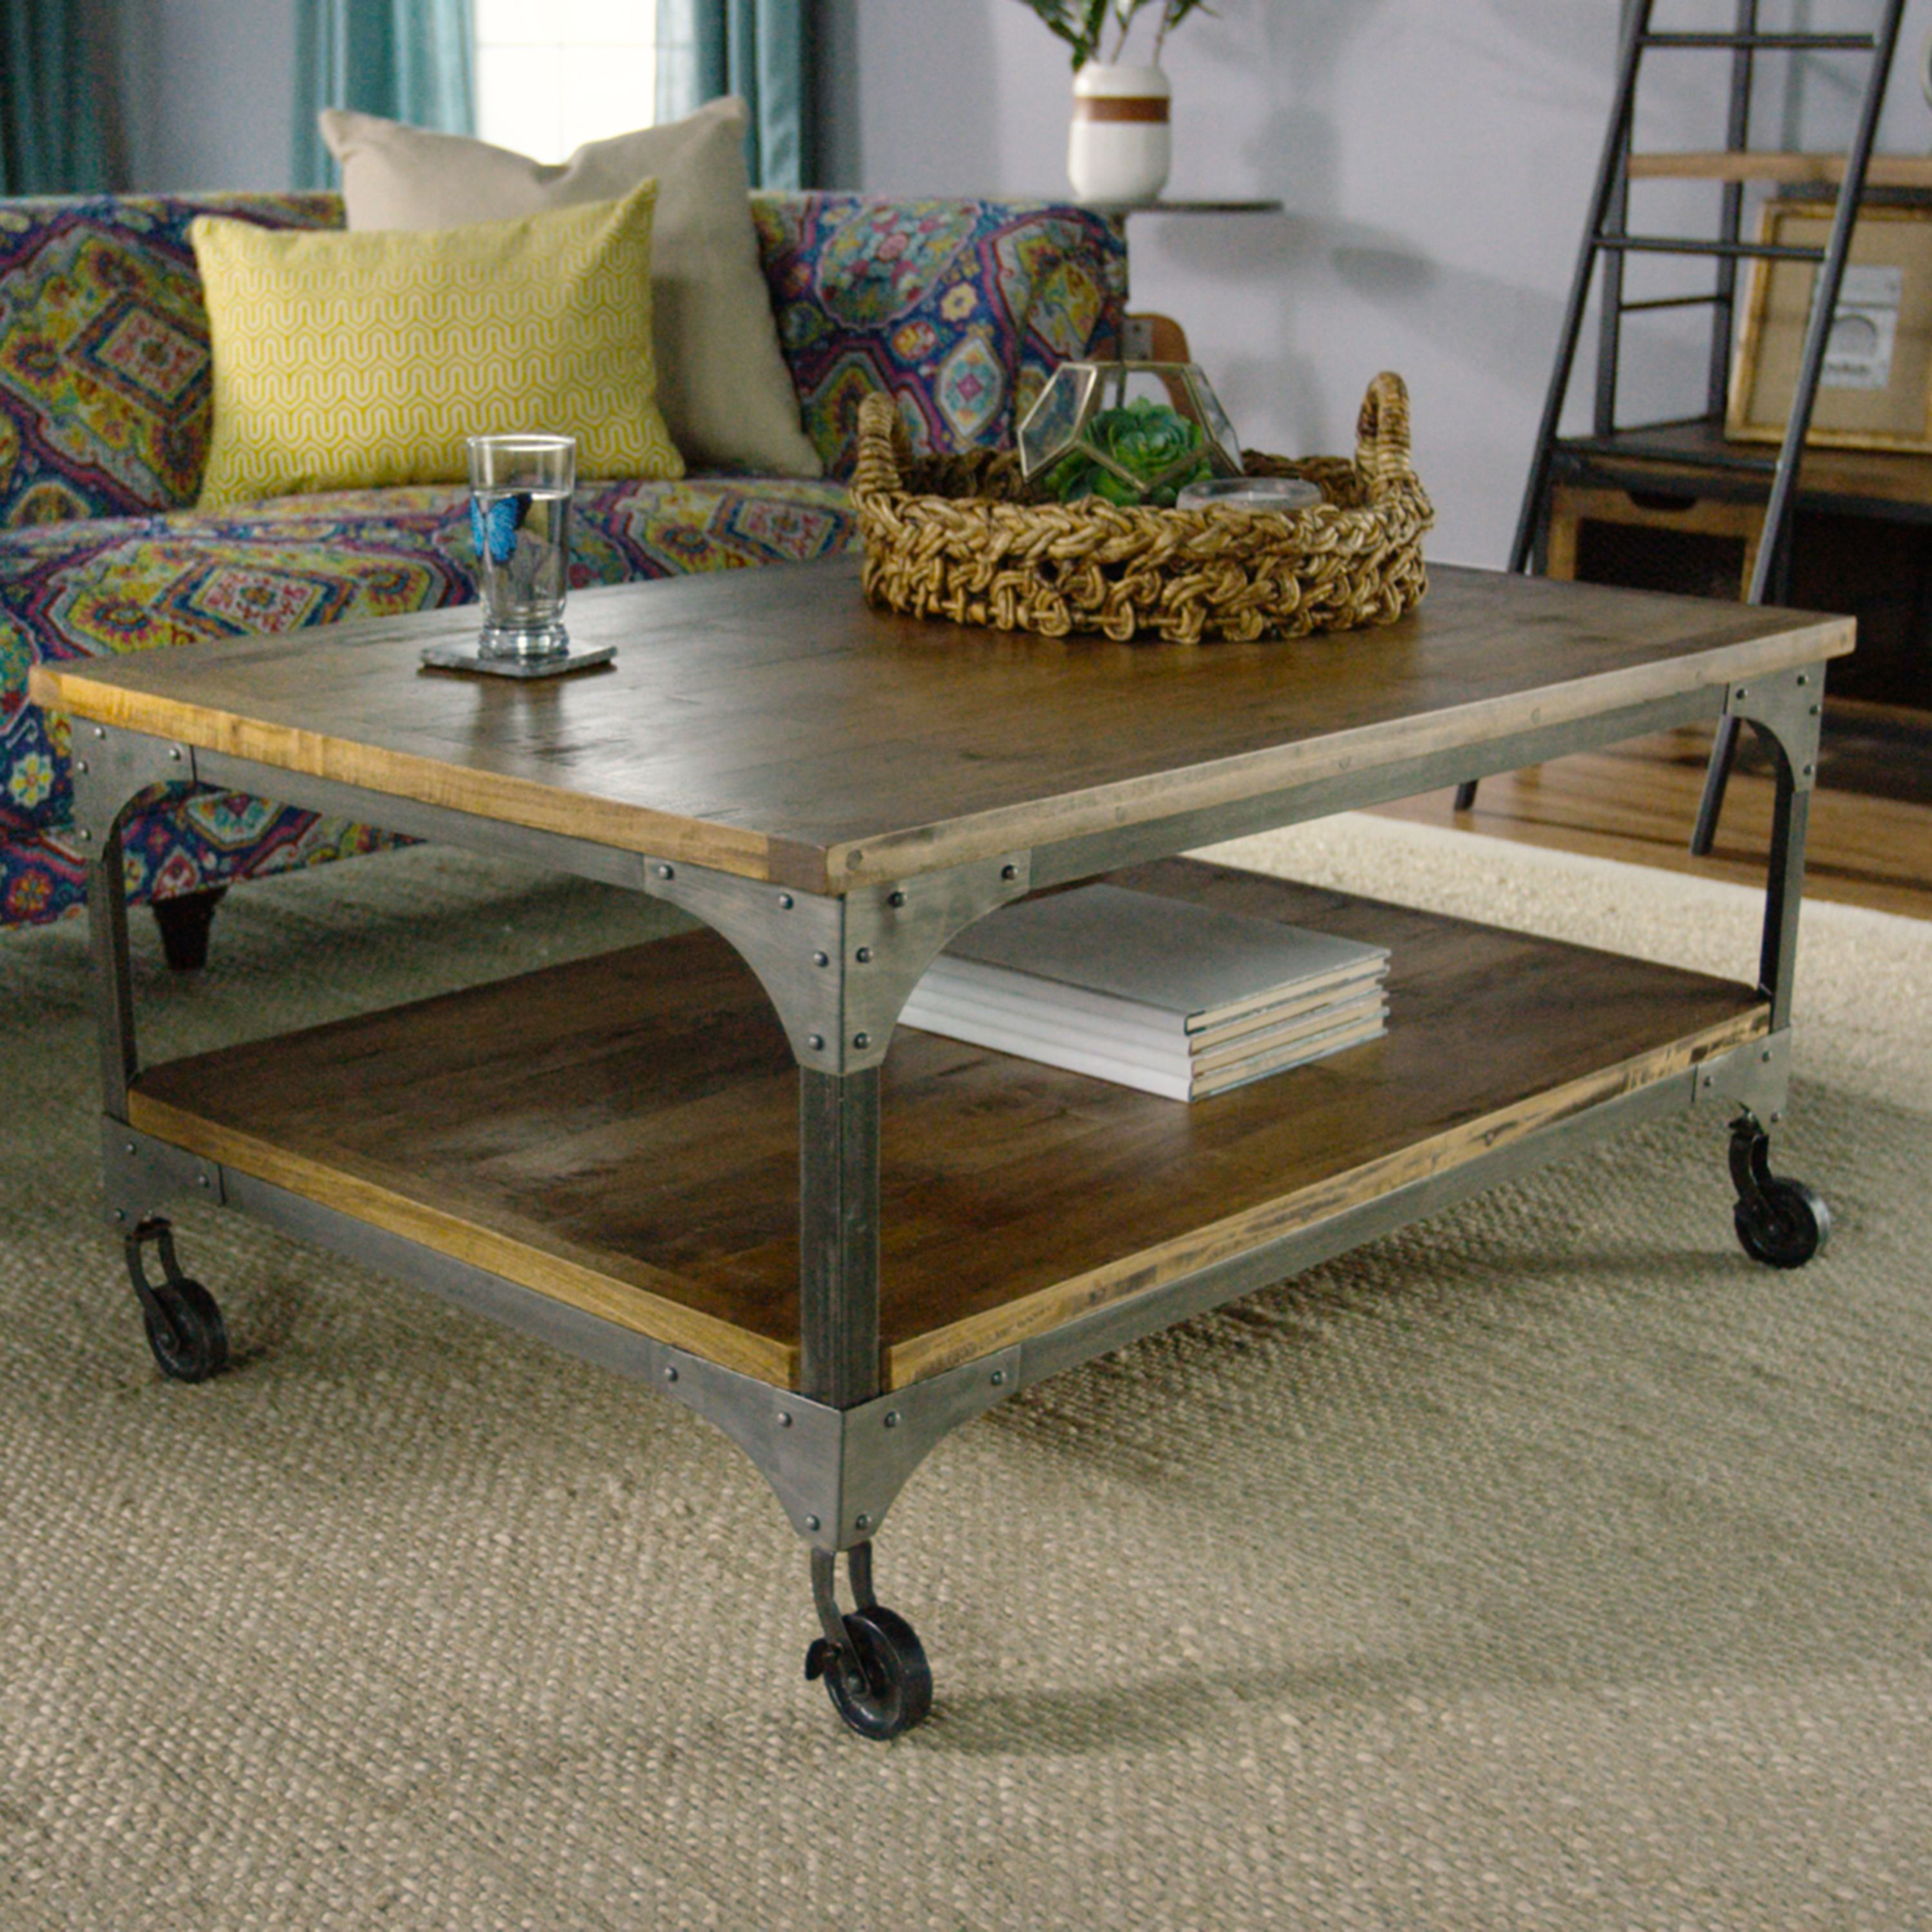 In front of the sofa or between two armchairs our coffee table gives your space